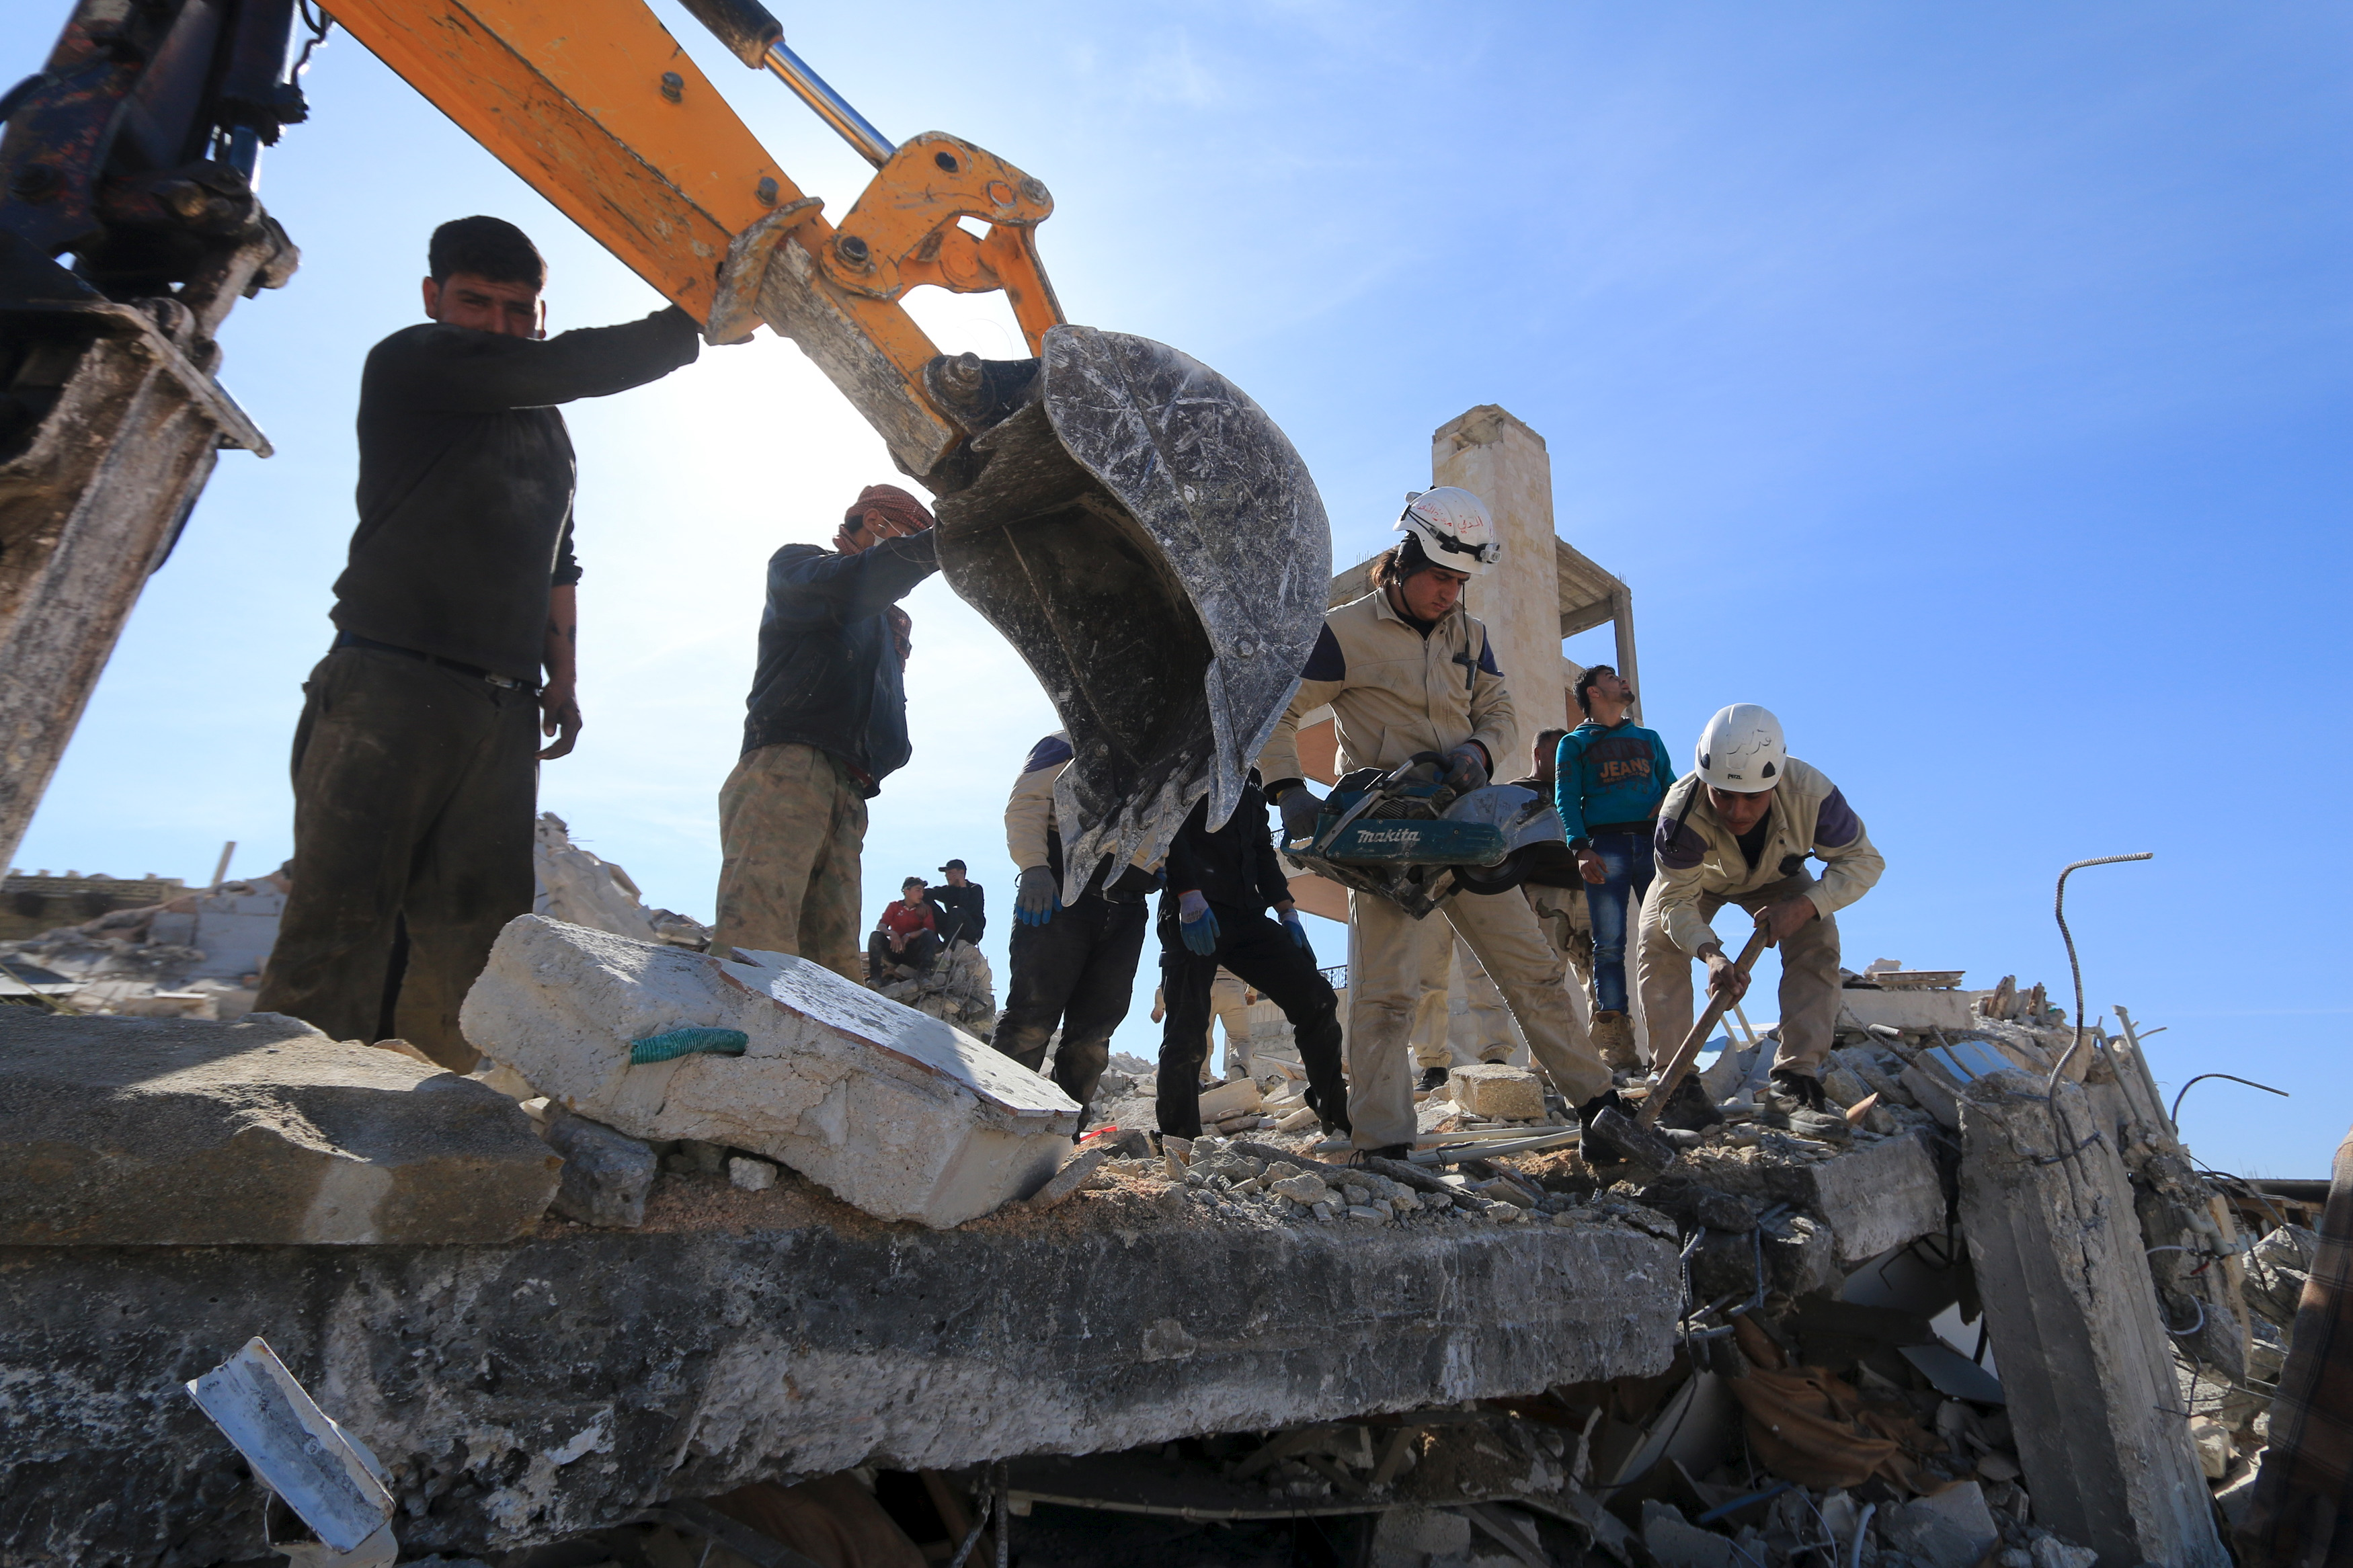 People and Civil Defense members remove rubble while looking for survivors in the ruins of a destroyed Medecins Sans Frontieres (MSF) supported hospital hit by missiles in Marat Numan, Idlib province, Syria, February 16, 2016.